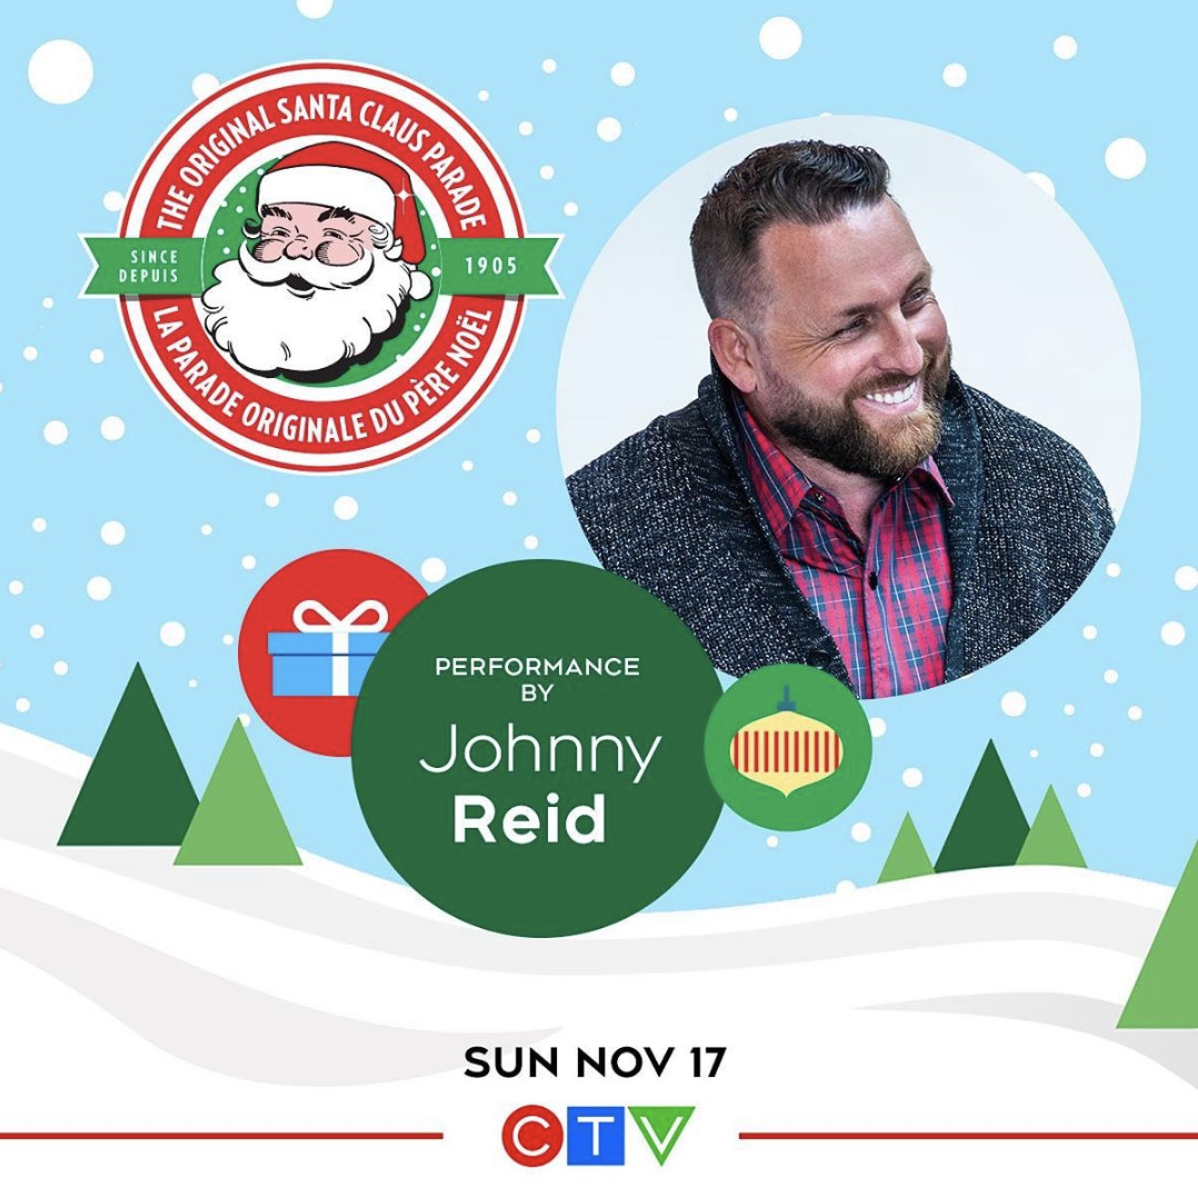 Attend Johnnys Live Santa Claus Parade Performance in Toronto